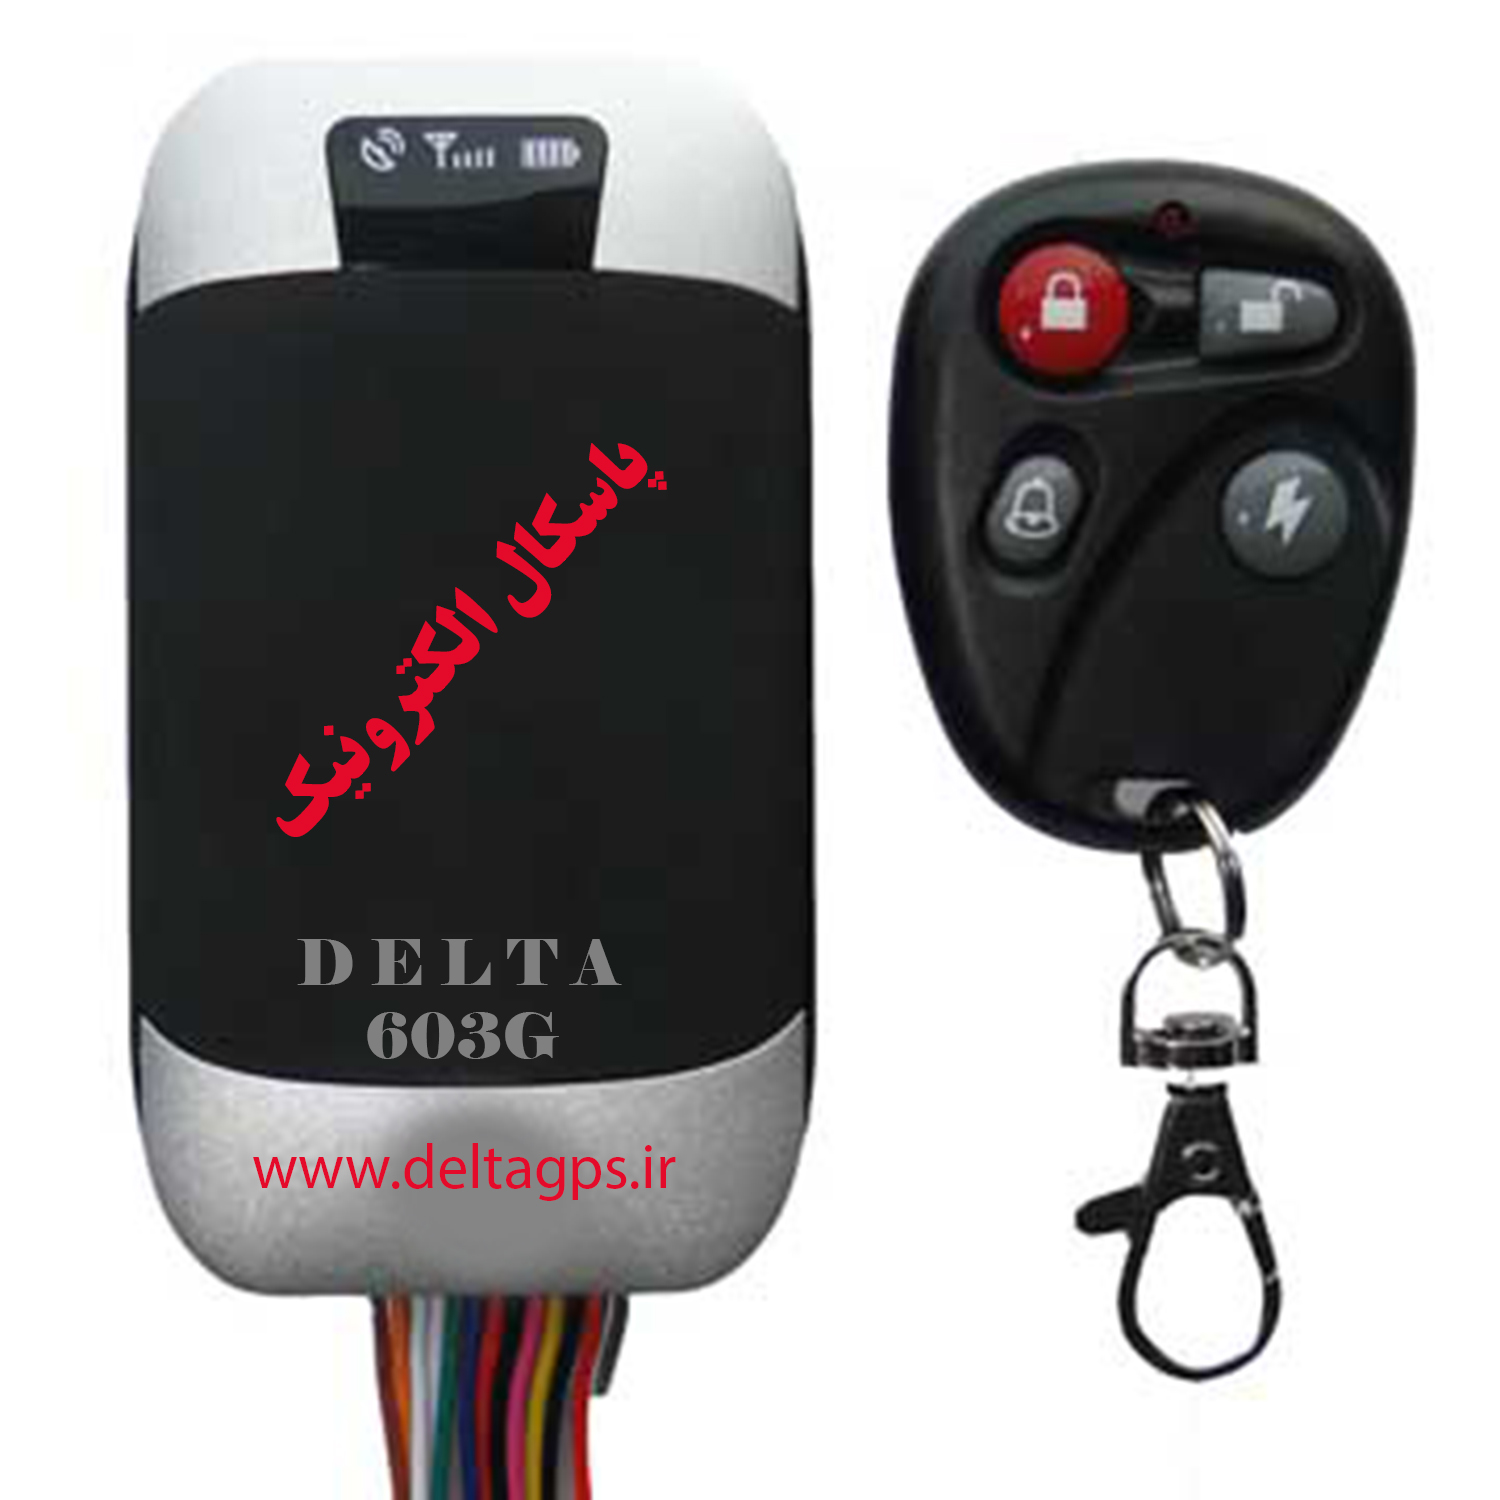 DELTA GPS vehicle tracker GPS603-G